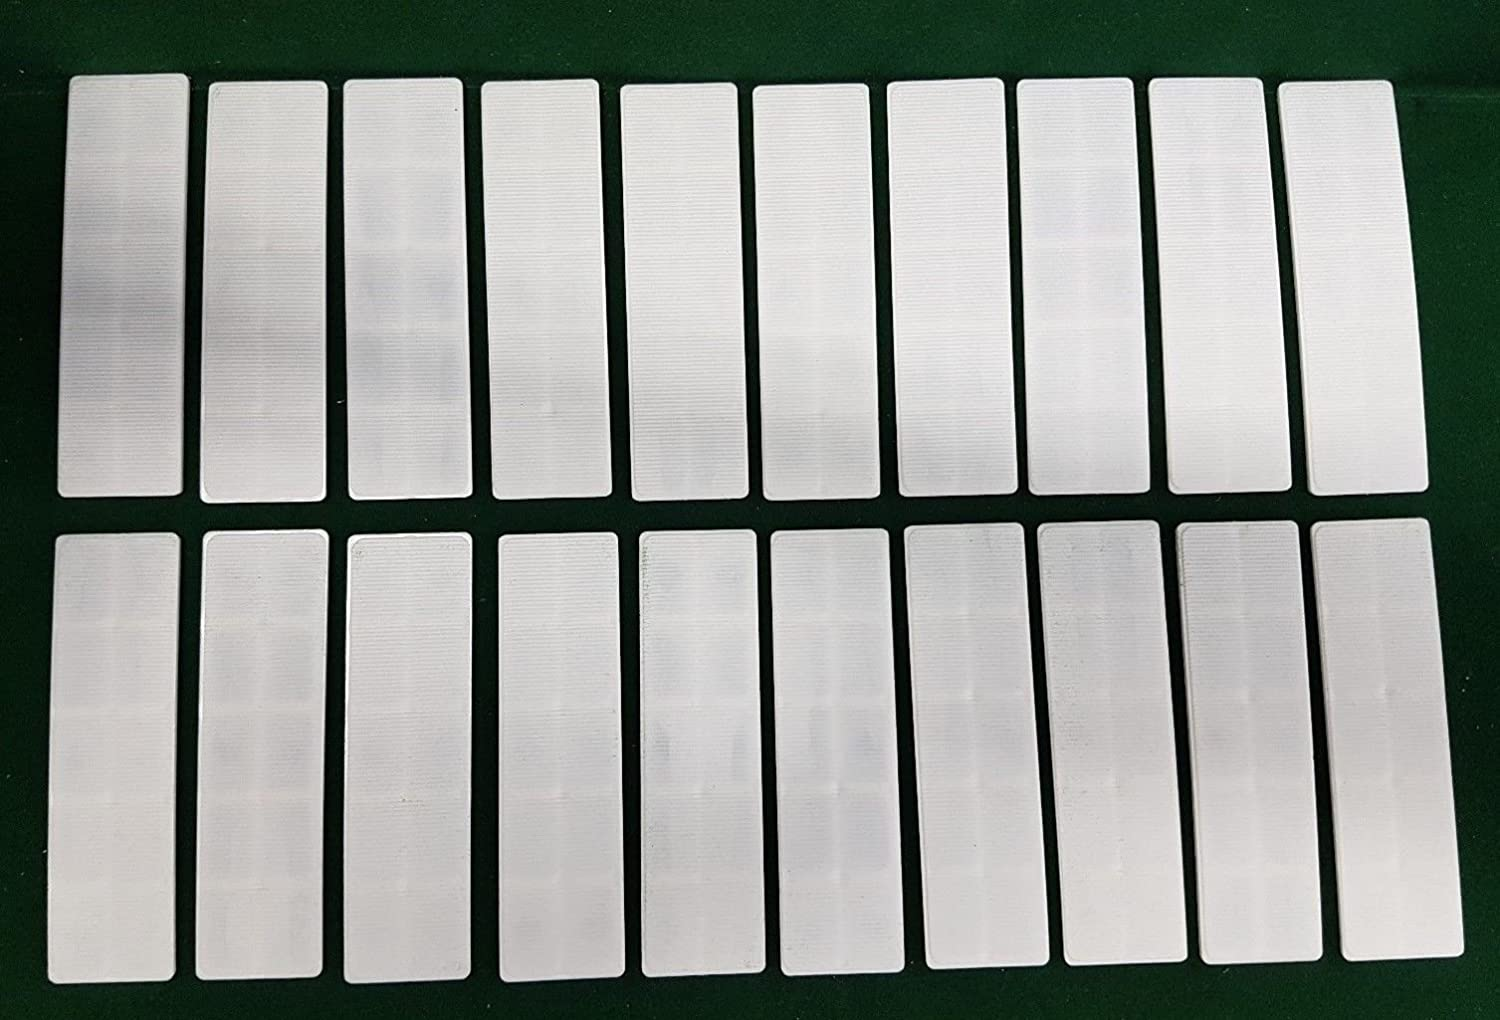 20 x WHITE 3mm x 100mm x 28mm PLASTIC WINDOW GLASS GLAZING PACKERS SPACERS